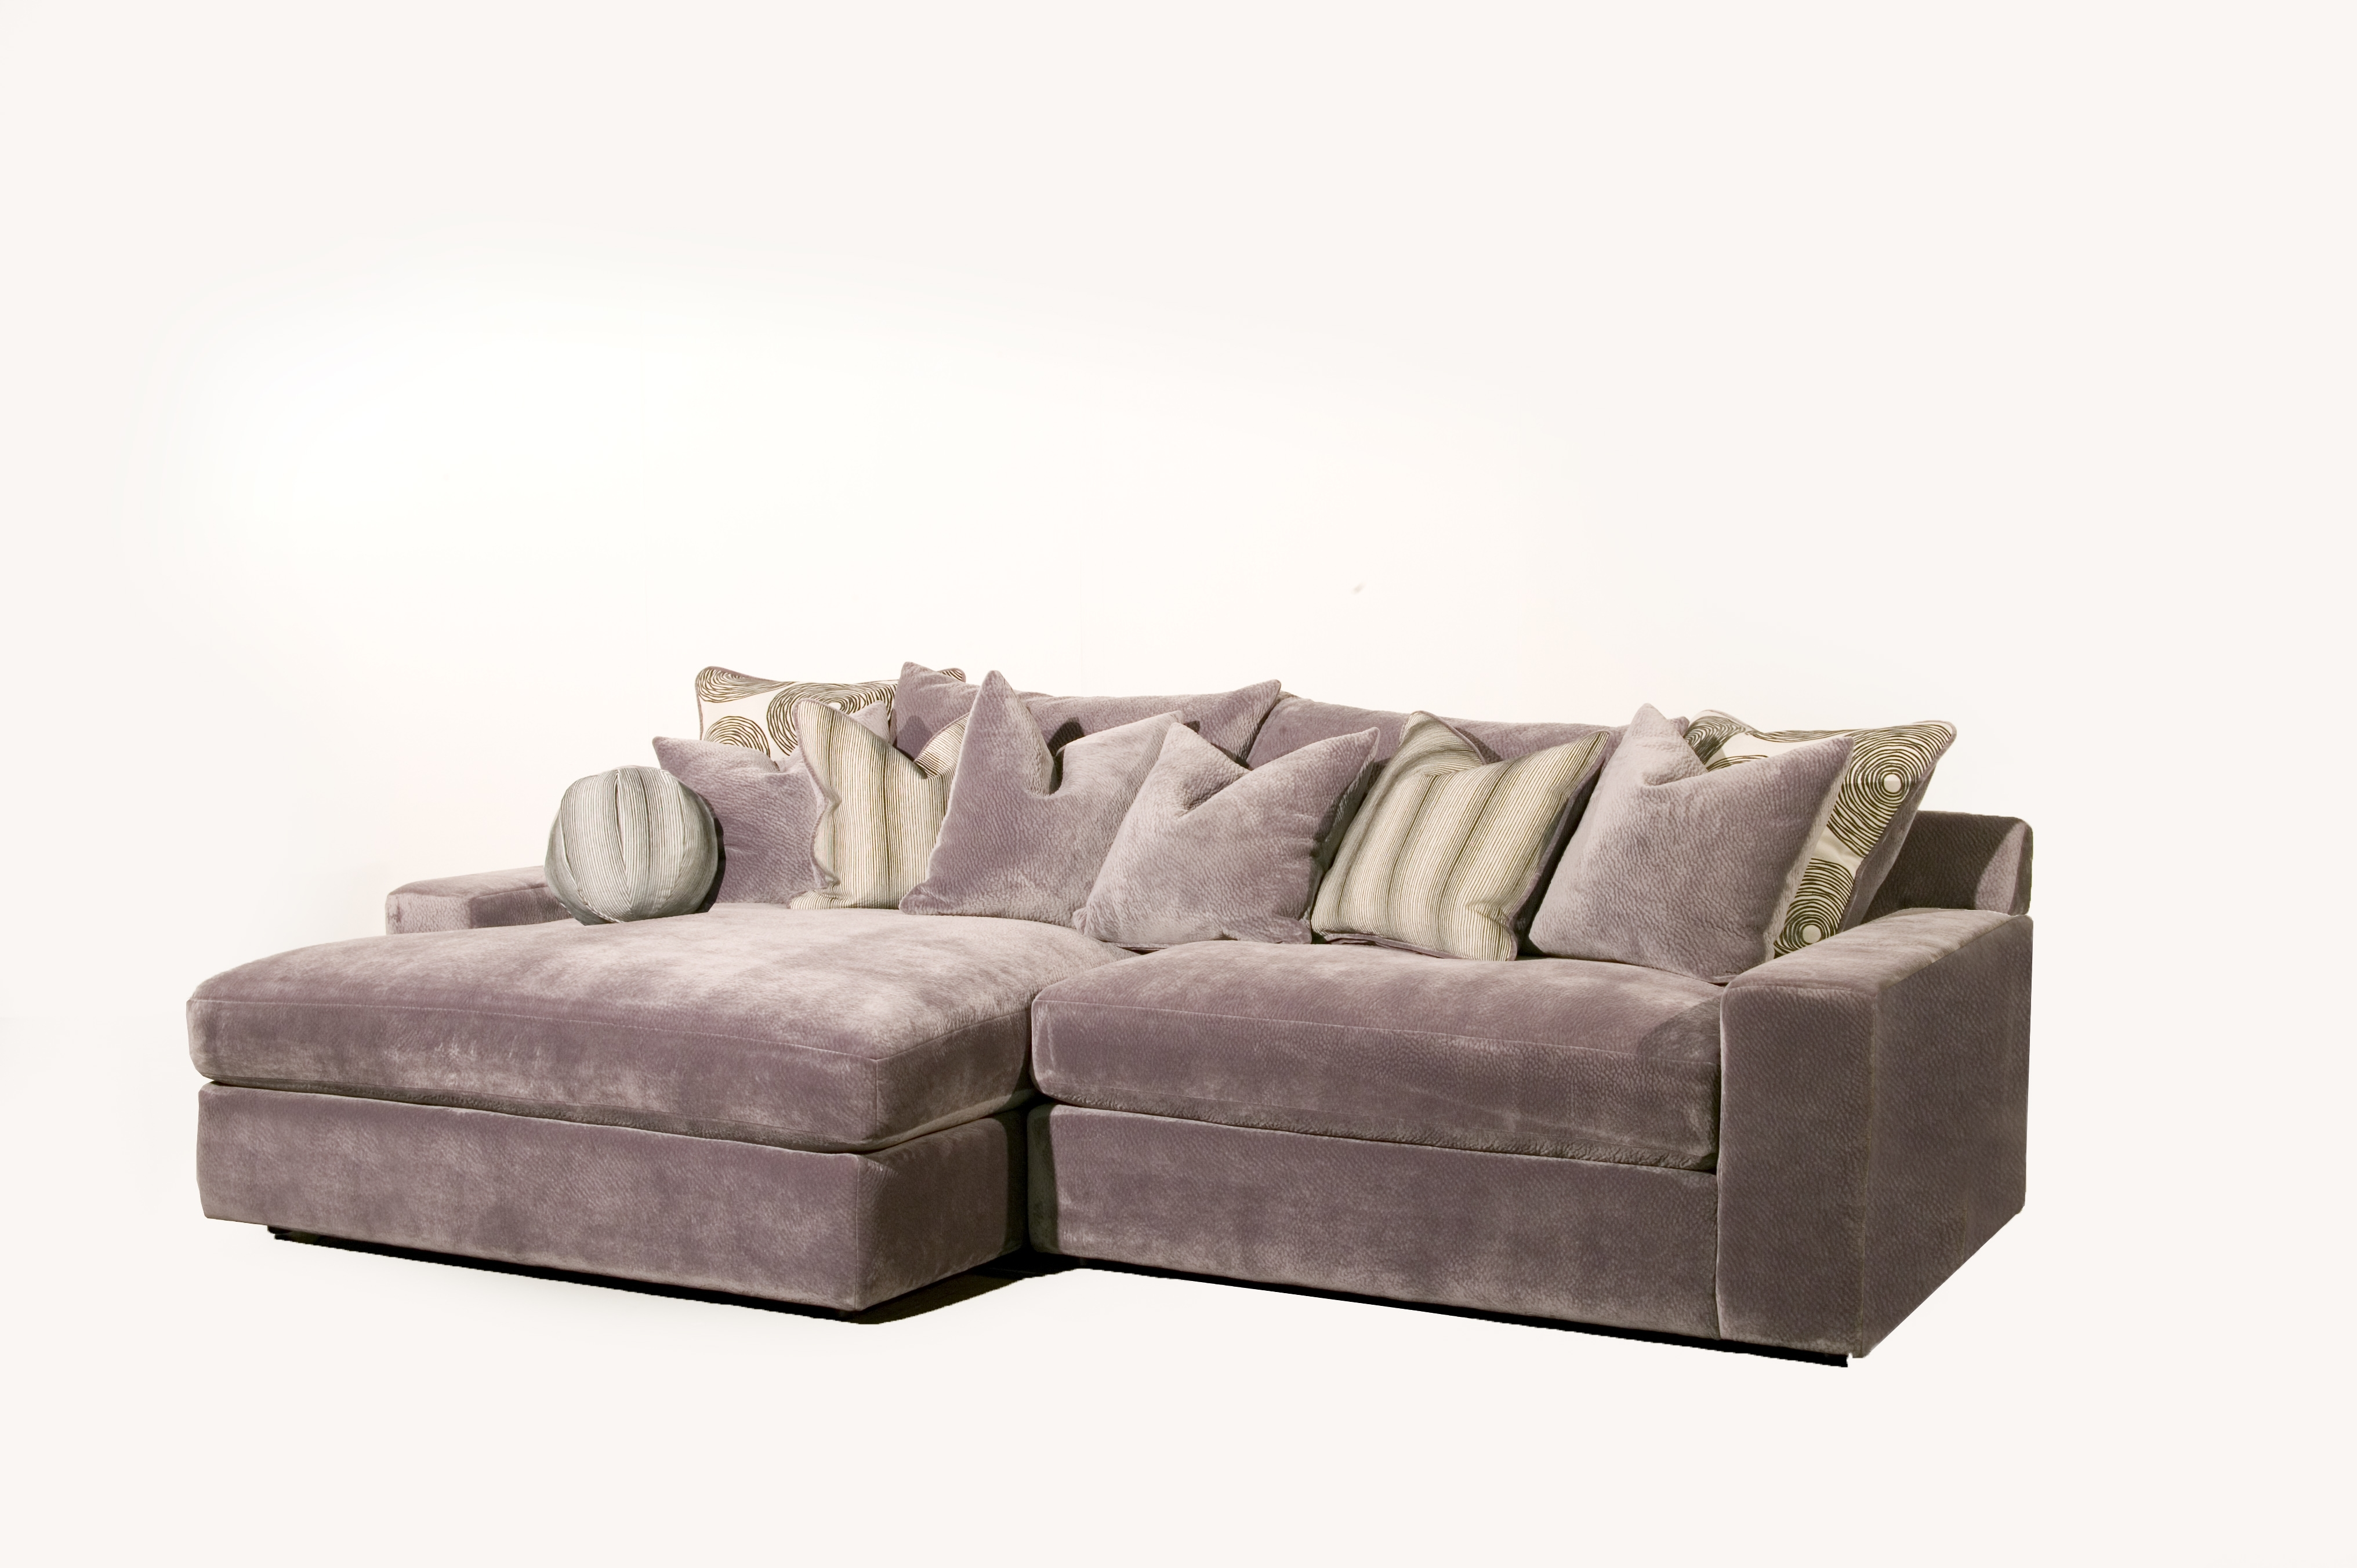 Michael Oasis Sofa Sectionals Regarding Recent Phoenix Arizona Sectional Sofas (View 8 of 20)